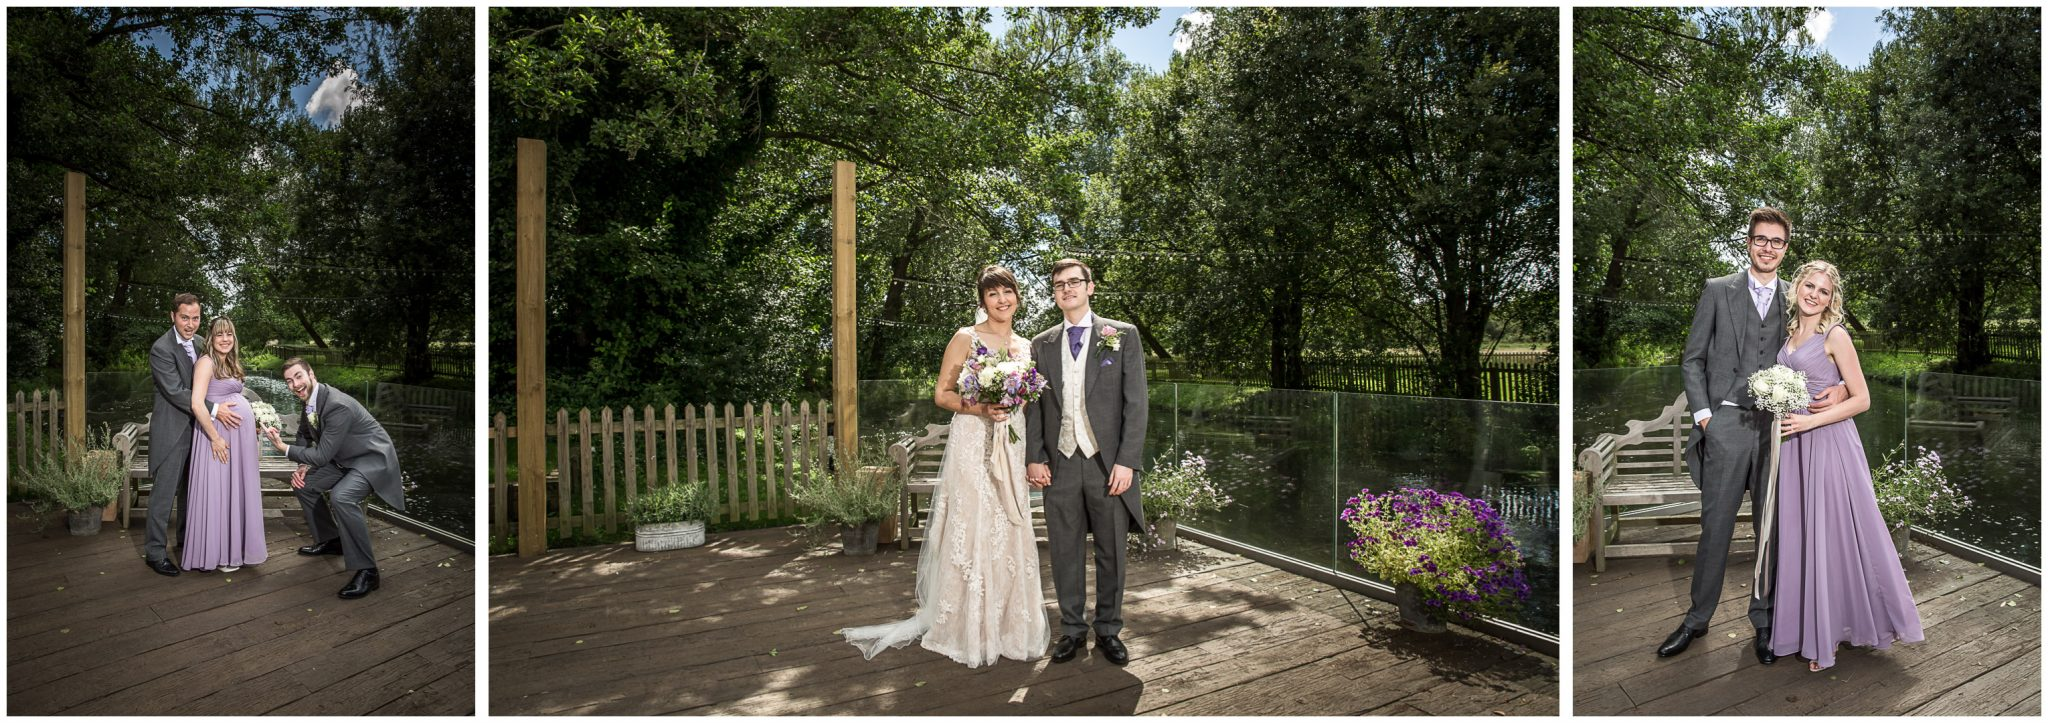 Sopley Mill wedding photography photos on riverside decking